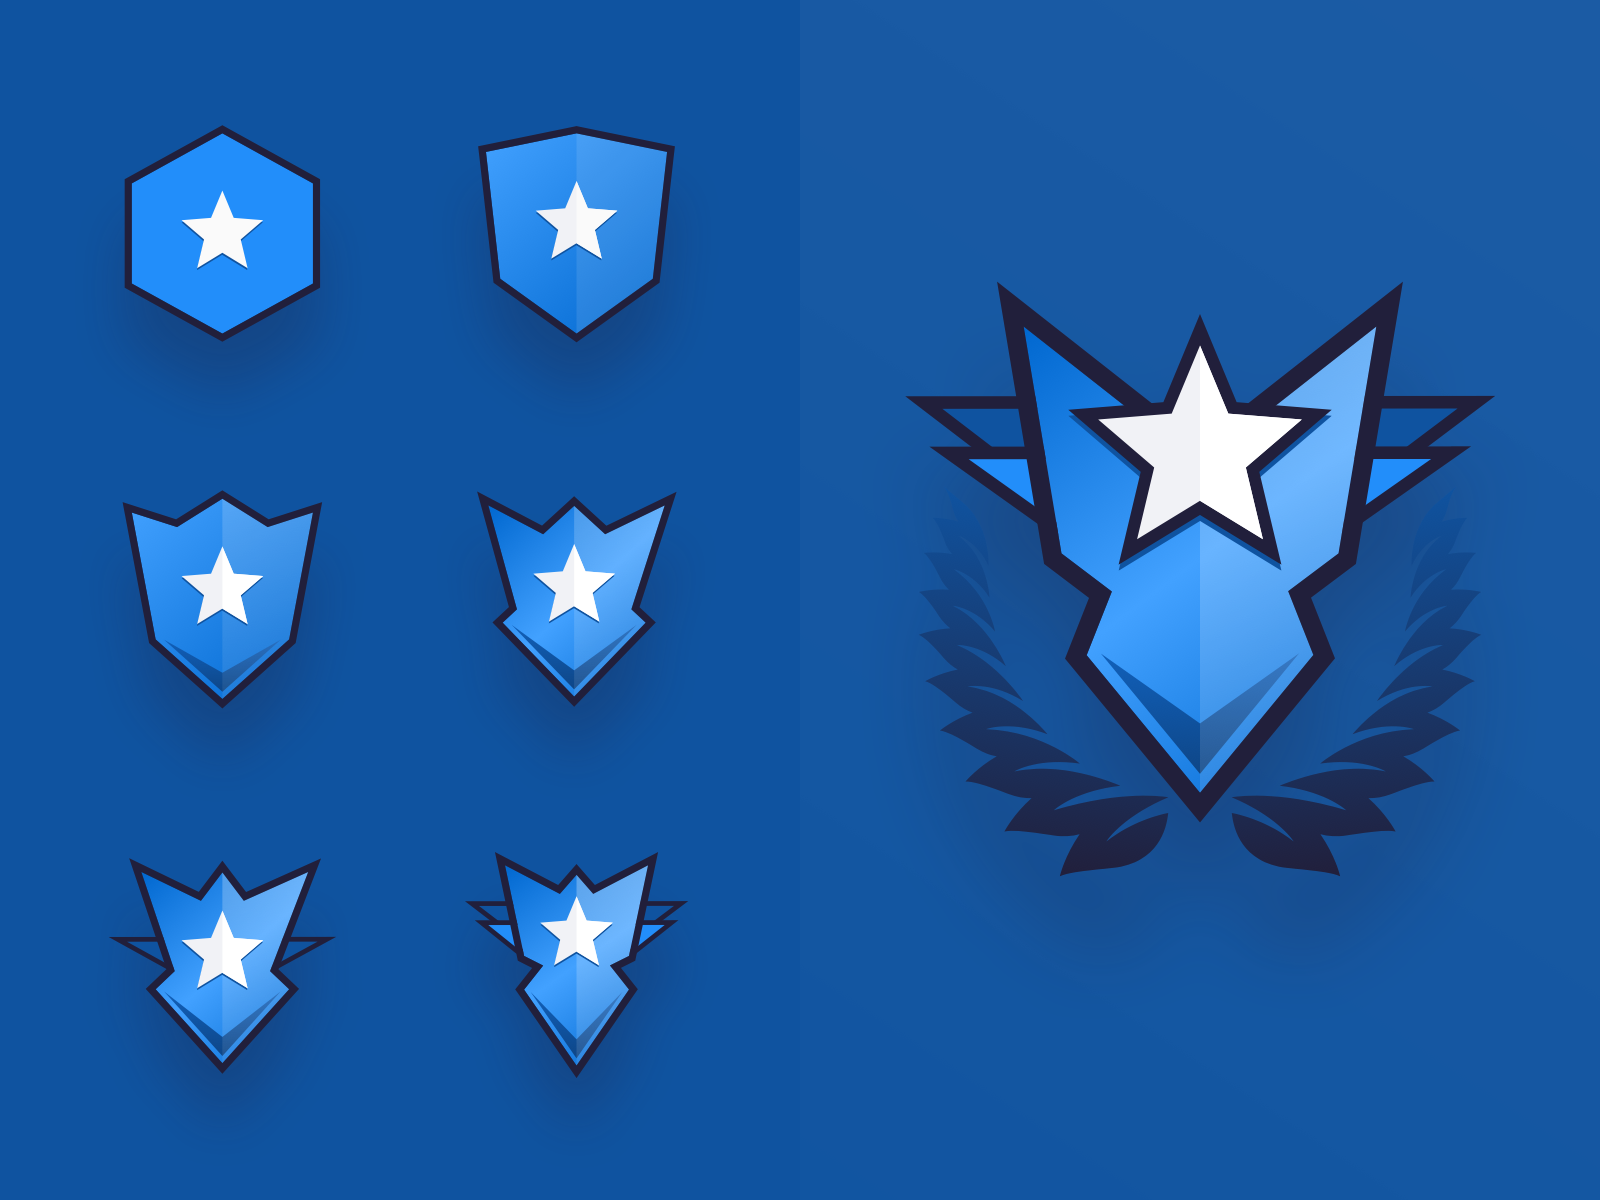 Game Progression Badges colour custom debut ux simple mobile icon flat design clean blue app vector product investing abstract ui badge game sketch